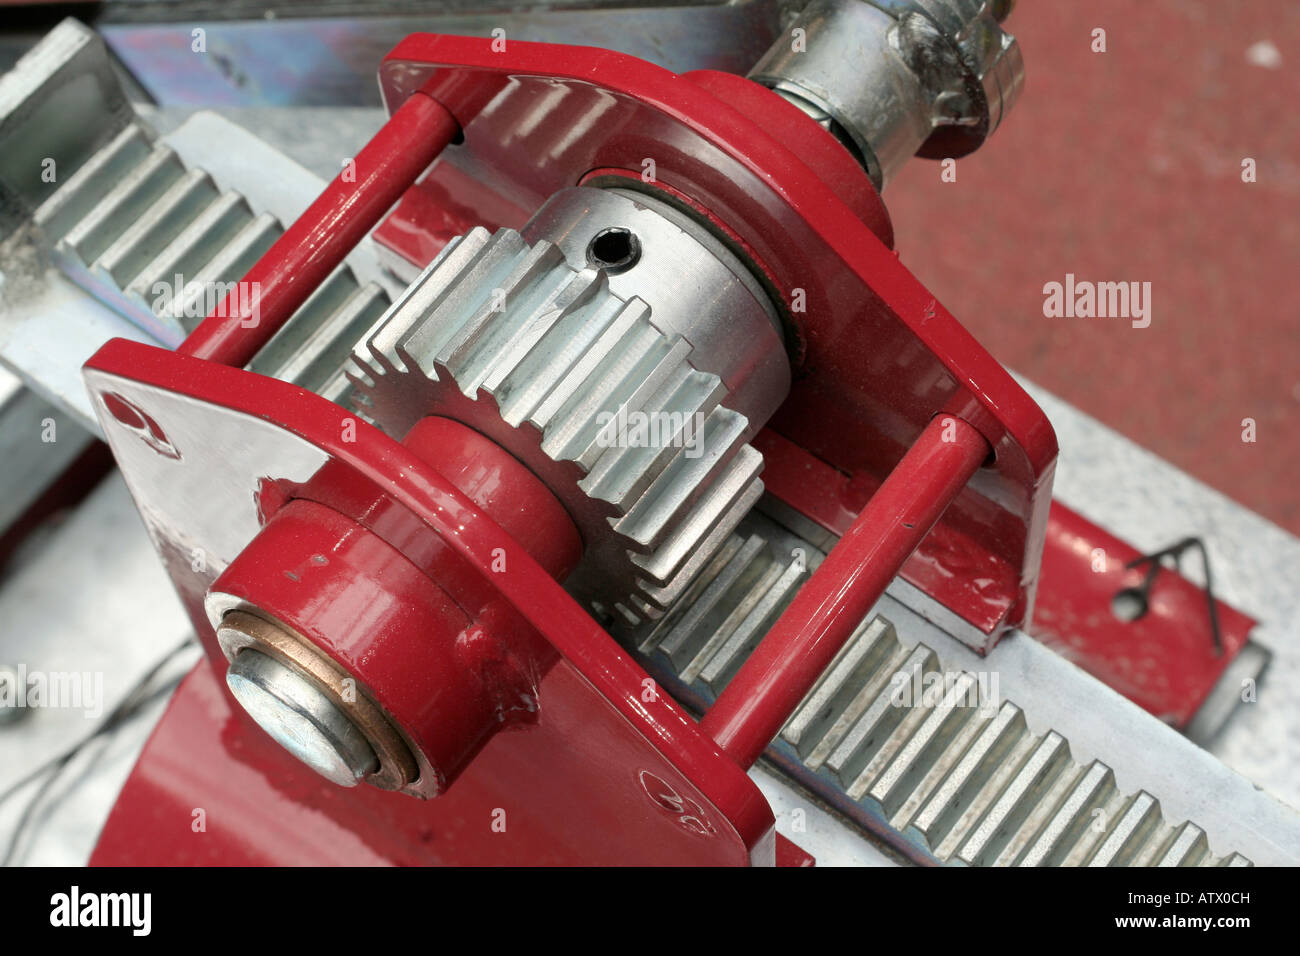 ... - Rack and pinion gears convert rotational motion into linear motion